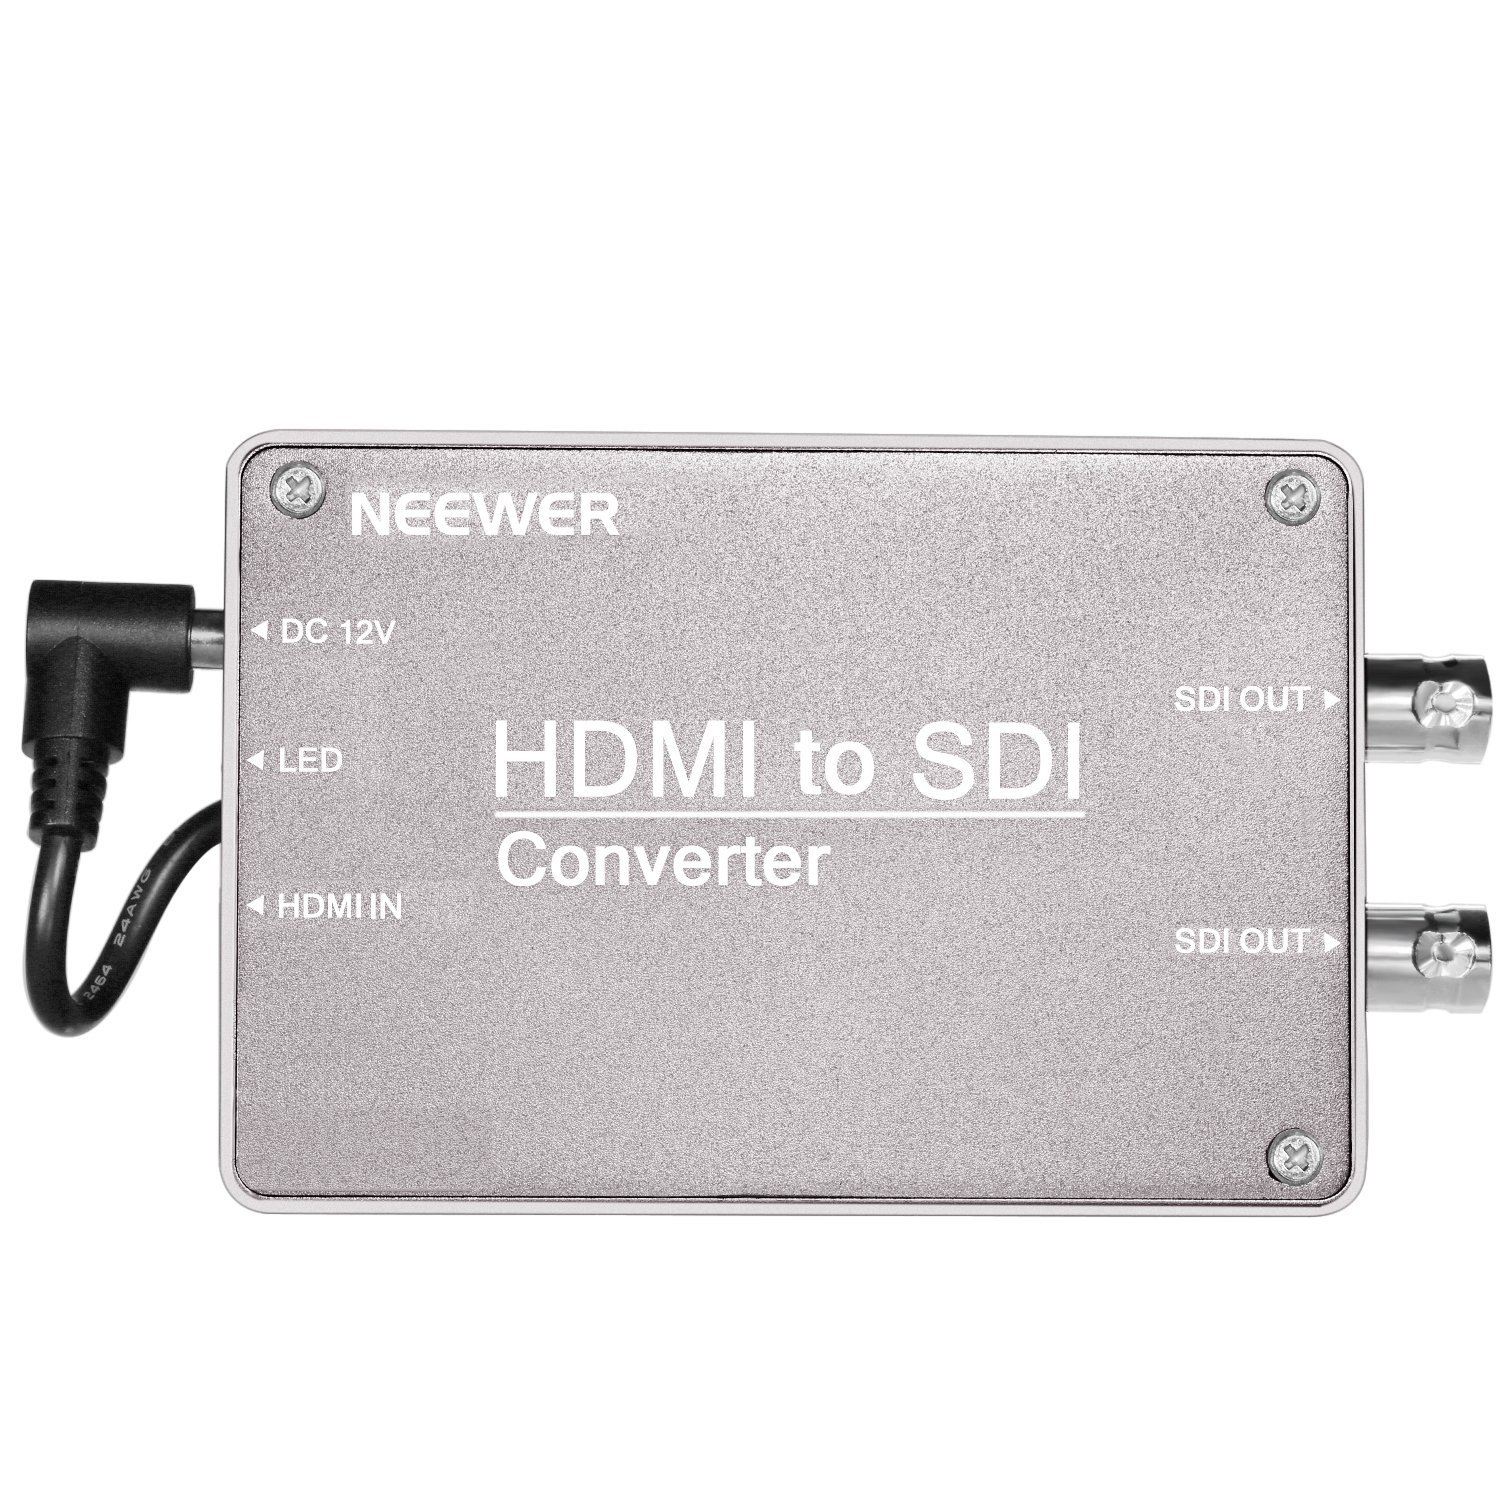 Neewer HDMI to SDI Micro Signal Converter for Monitor with HDMI Output, 2.970 Gbit/s HD Synchronized Audio Video Adapter Support 1080P 1080i 720P 576i 480i for Camera Home Theater